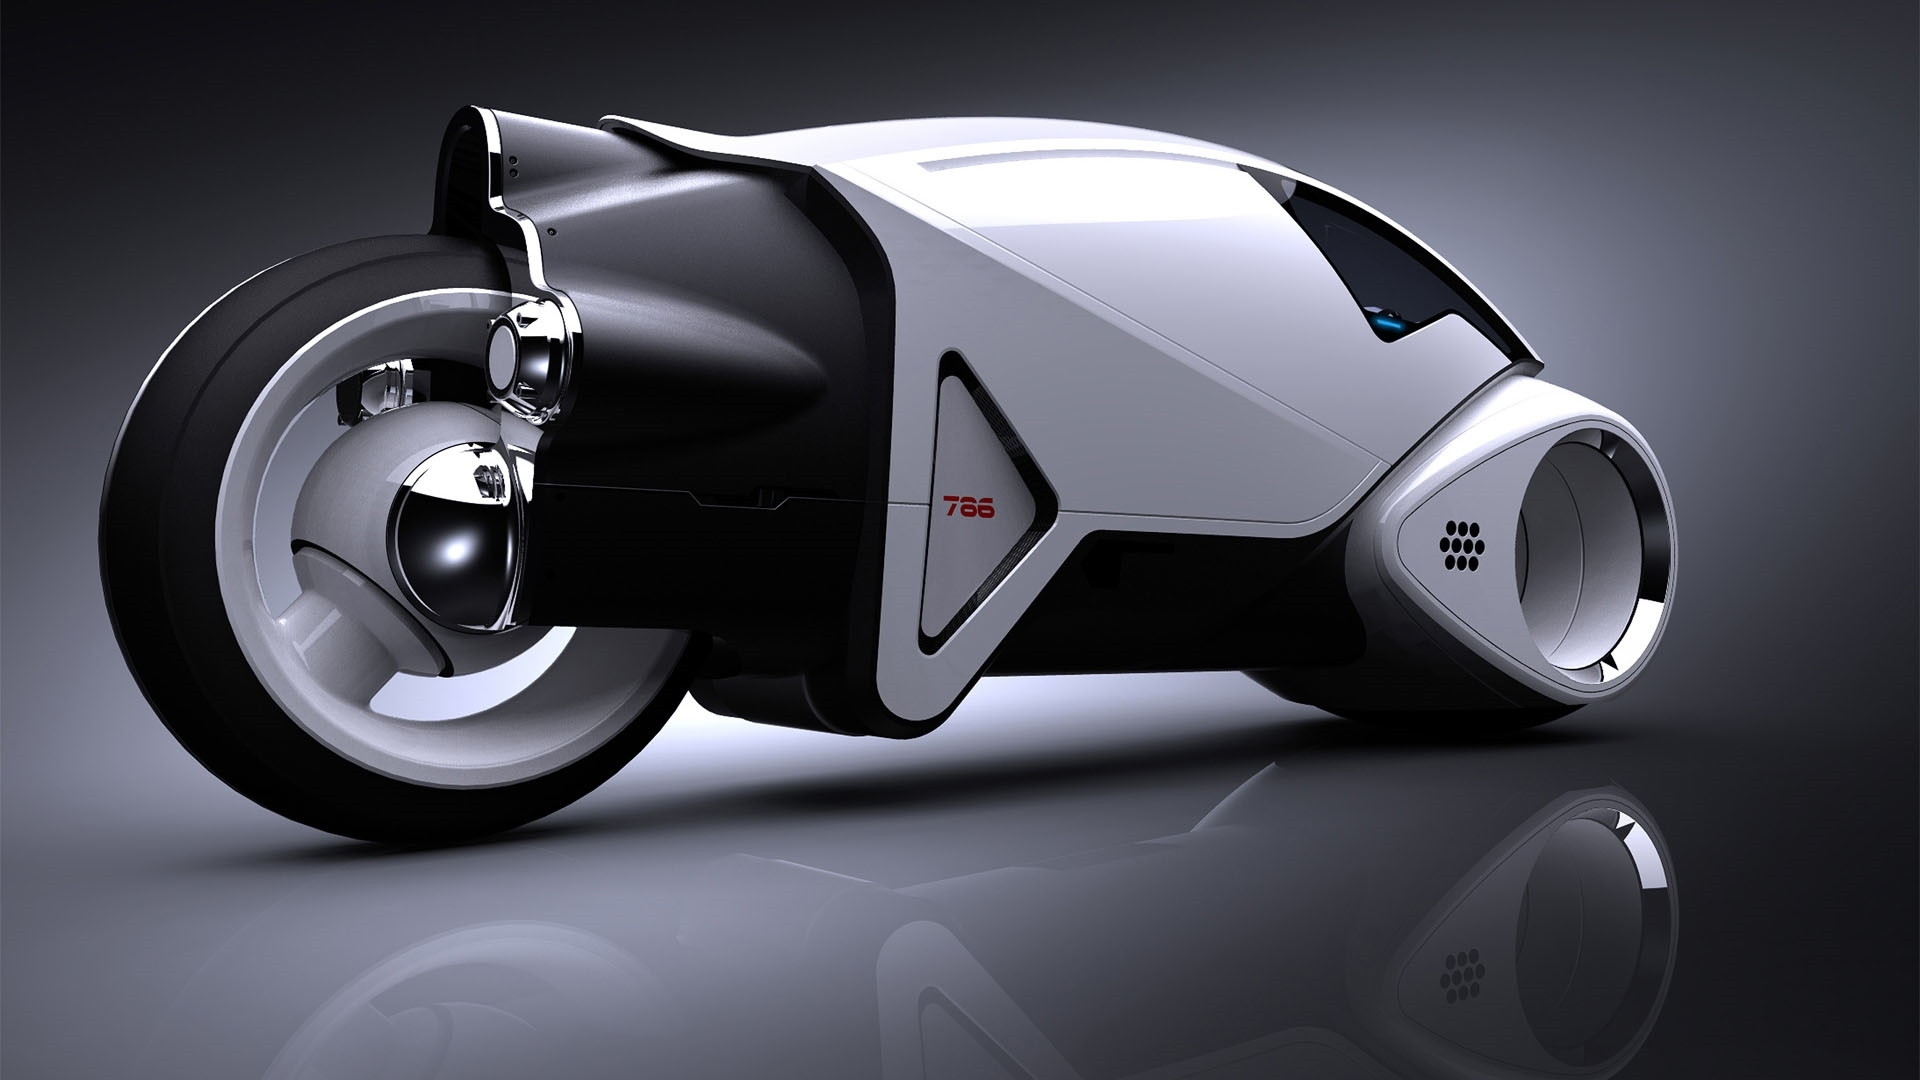 tron bike hd wallpaper